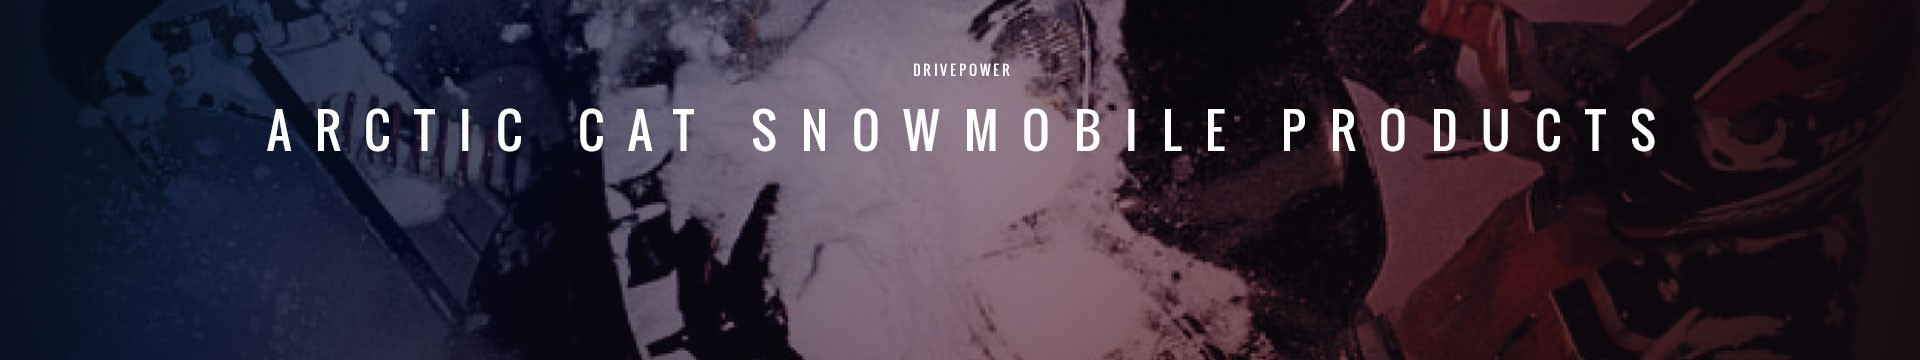 Drivepower Arctic Cat Snowmobile Products